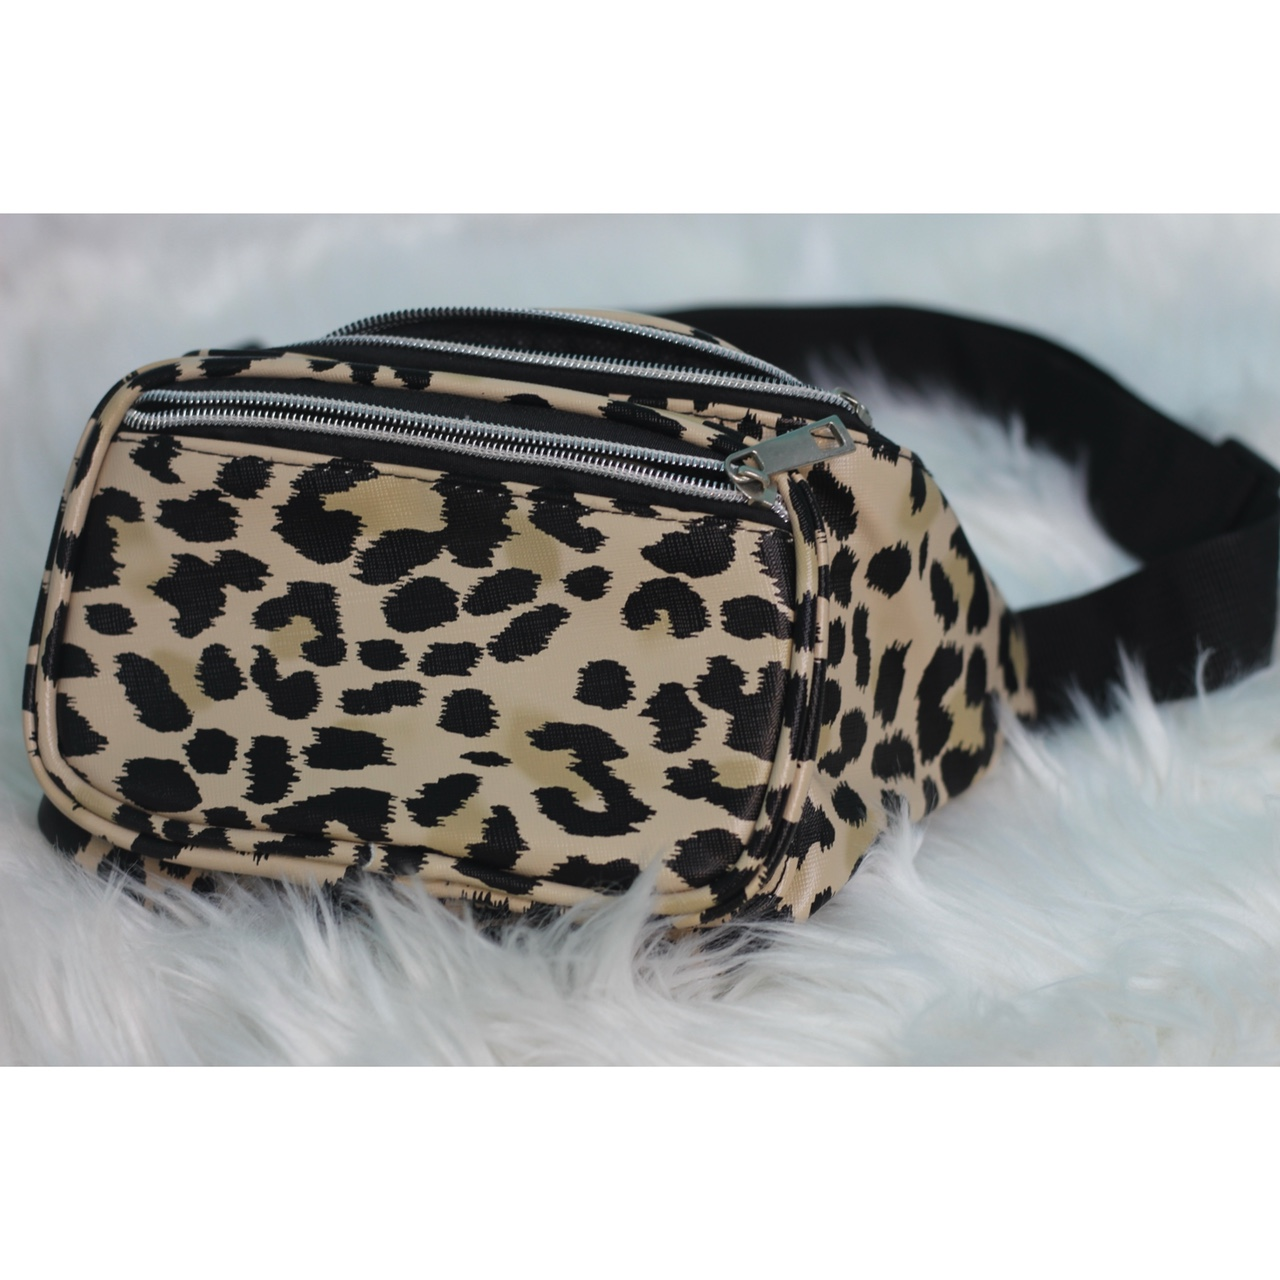 Product Image 1 - Very cute animal print Fanny